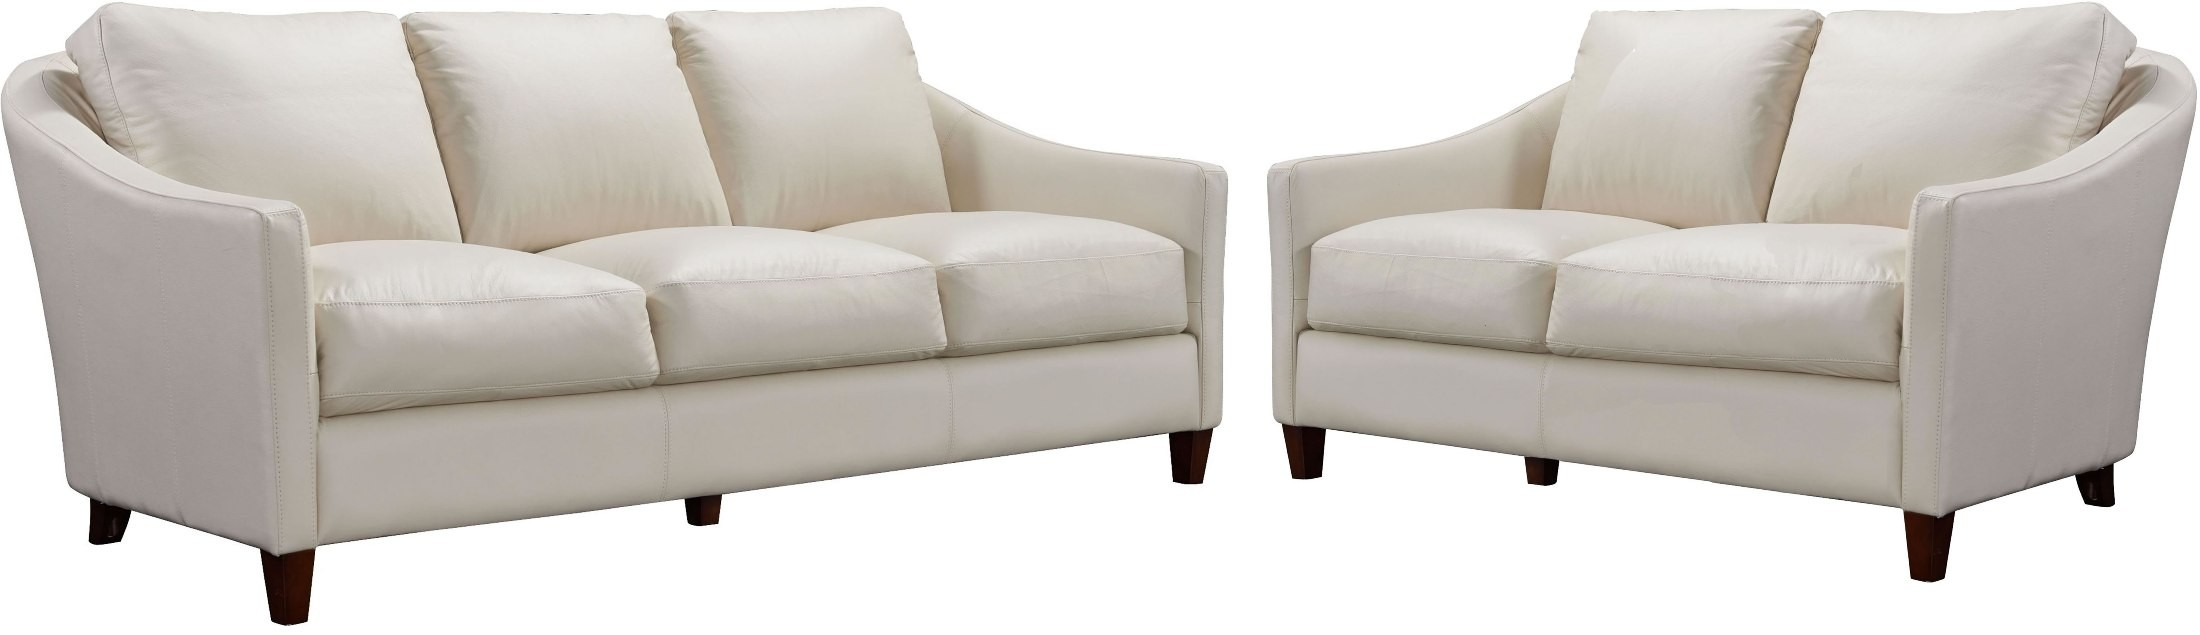 Georgetowne South Beach Beige Leather Living Room Set from Luxe ...